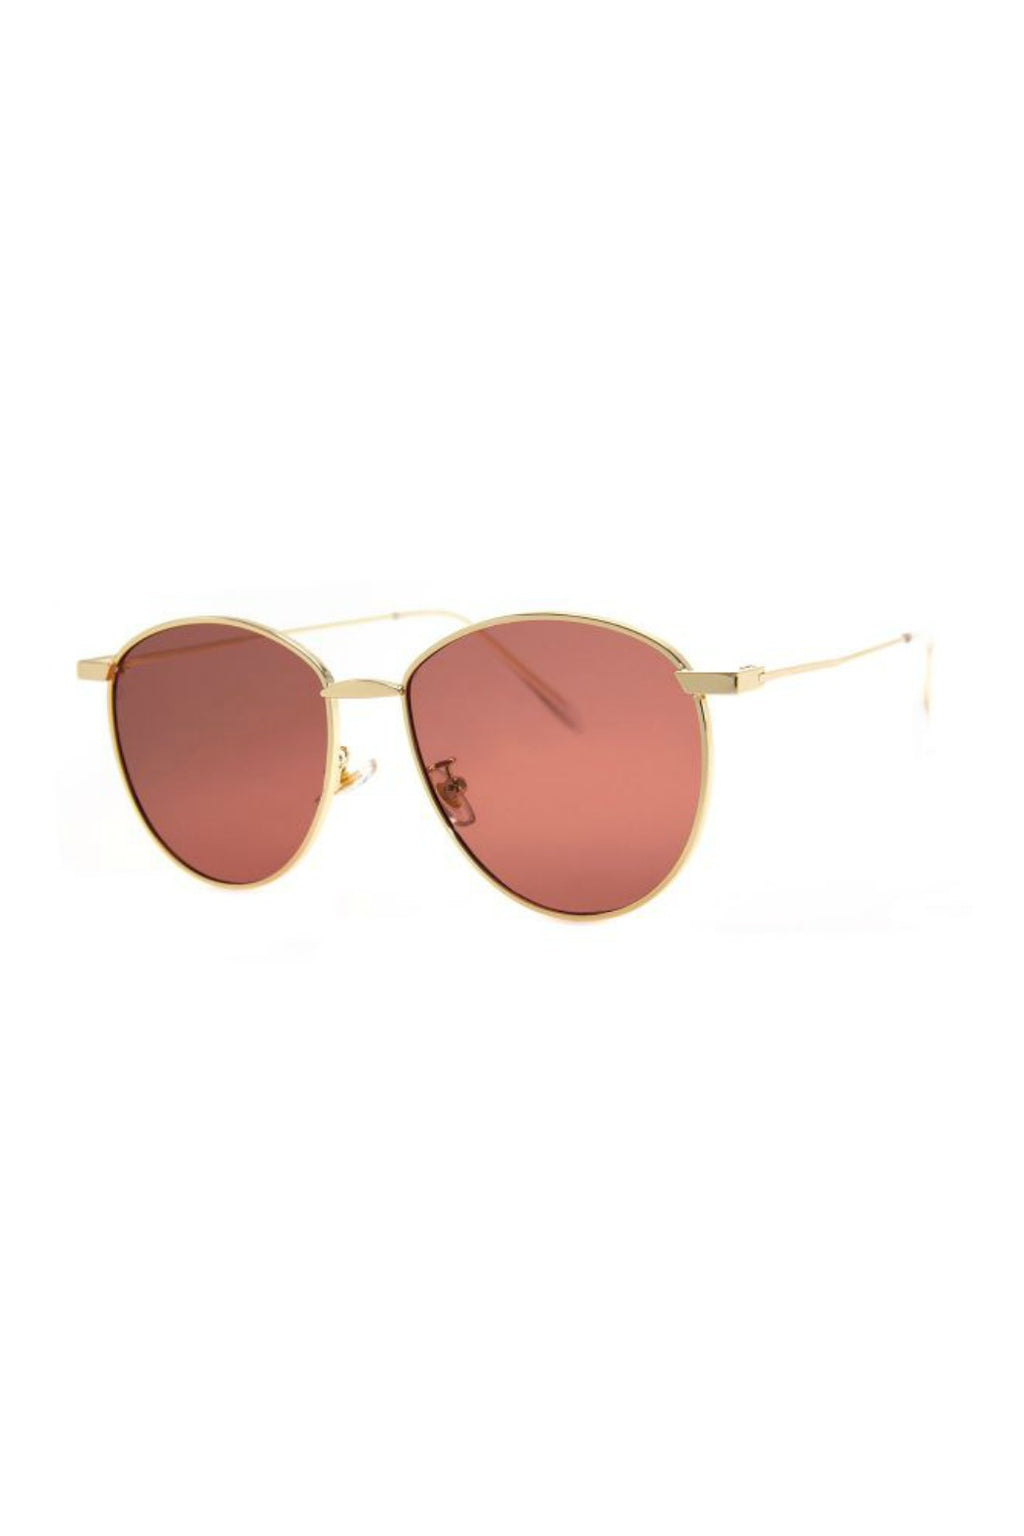 Mossad Sunnies - Gold/Rose